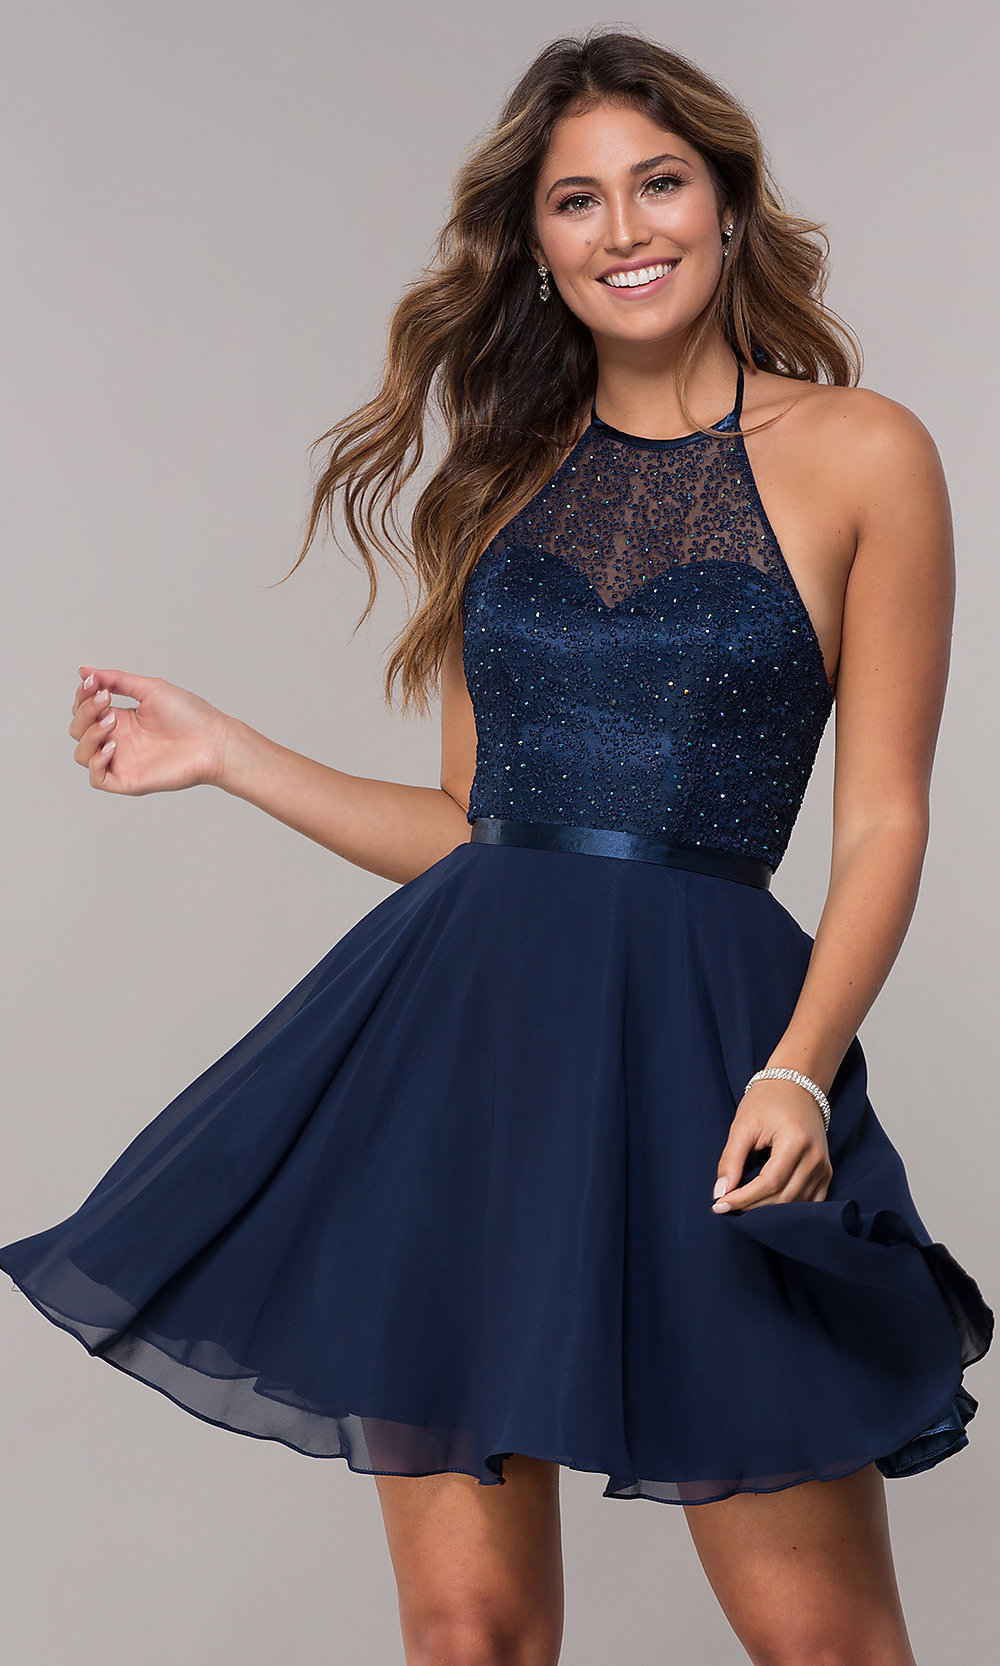 de02cd4d793 Halter Homecoming Dresses – Fashion dresses